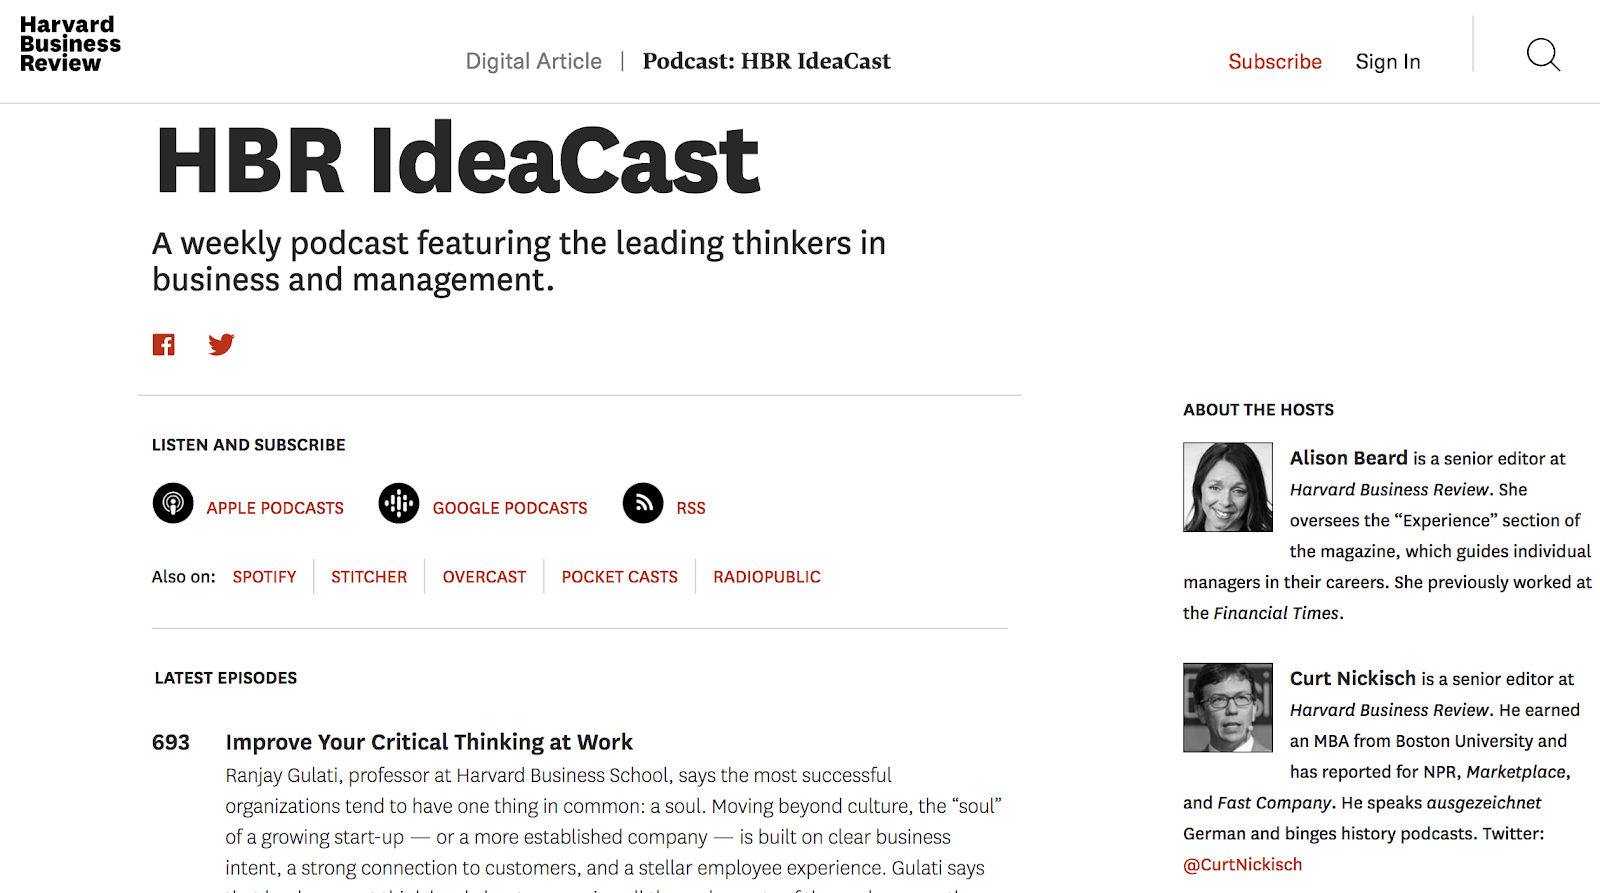 podcast-content-marketing-example